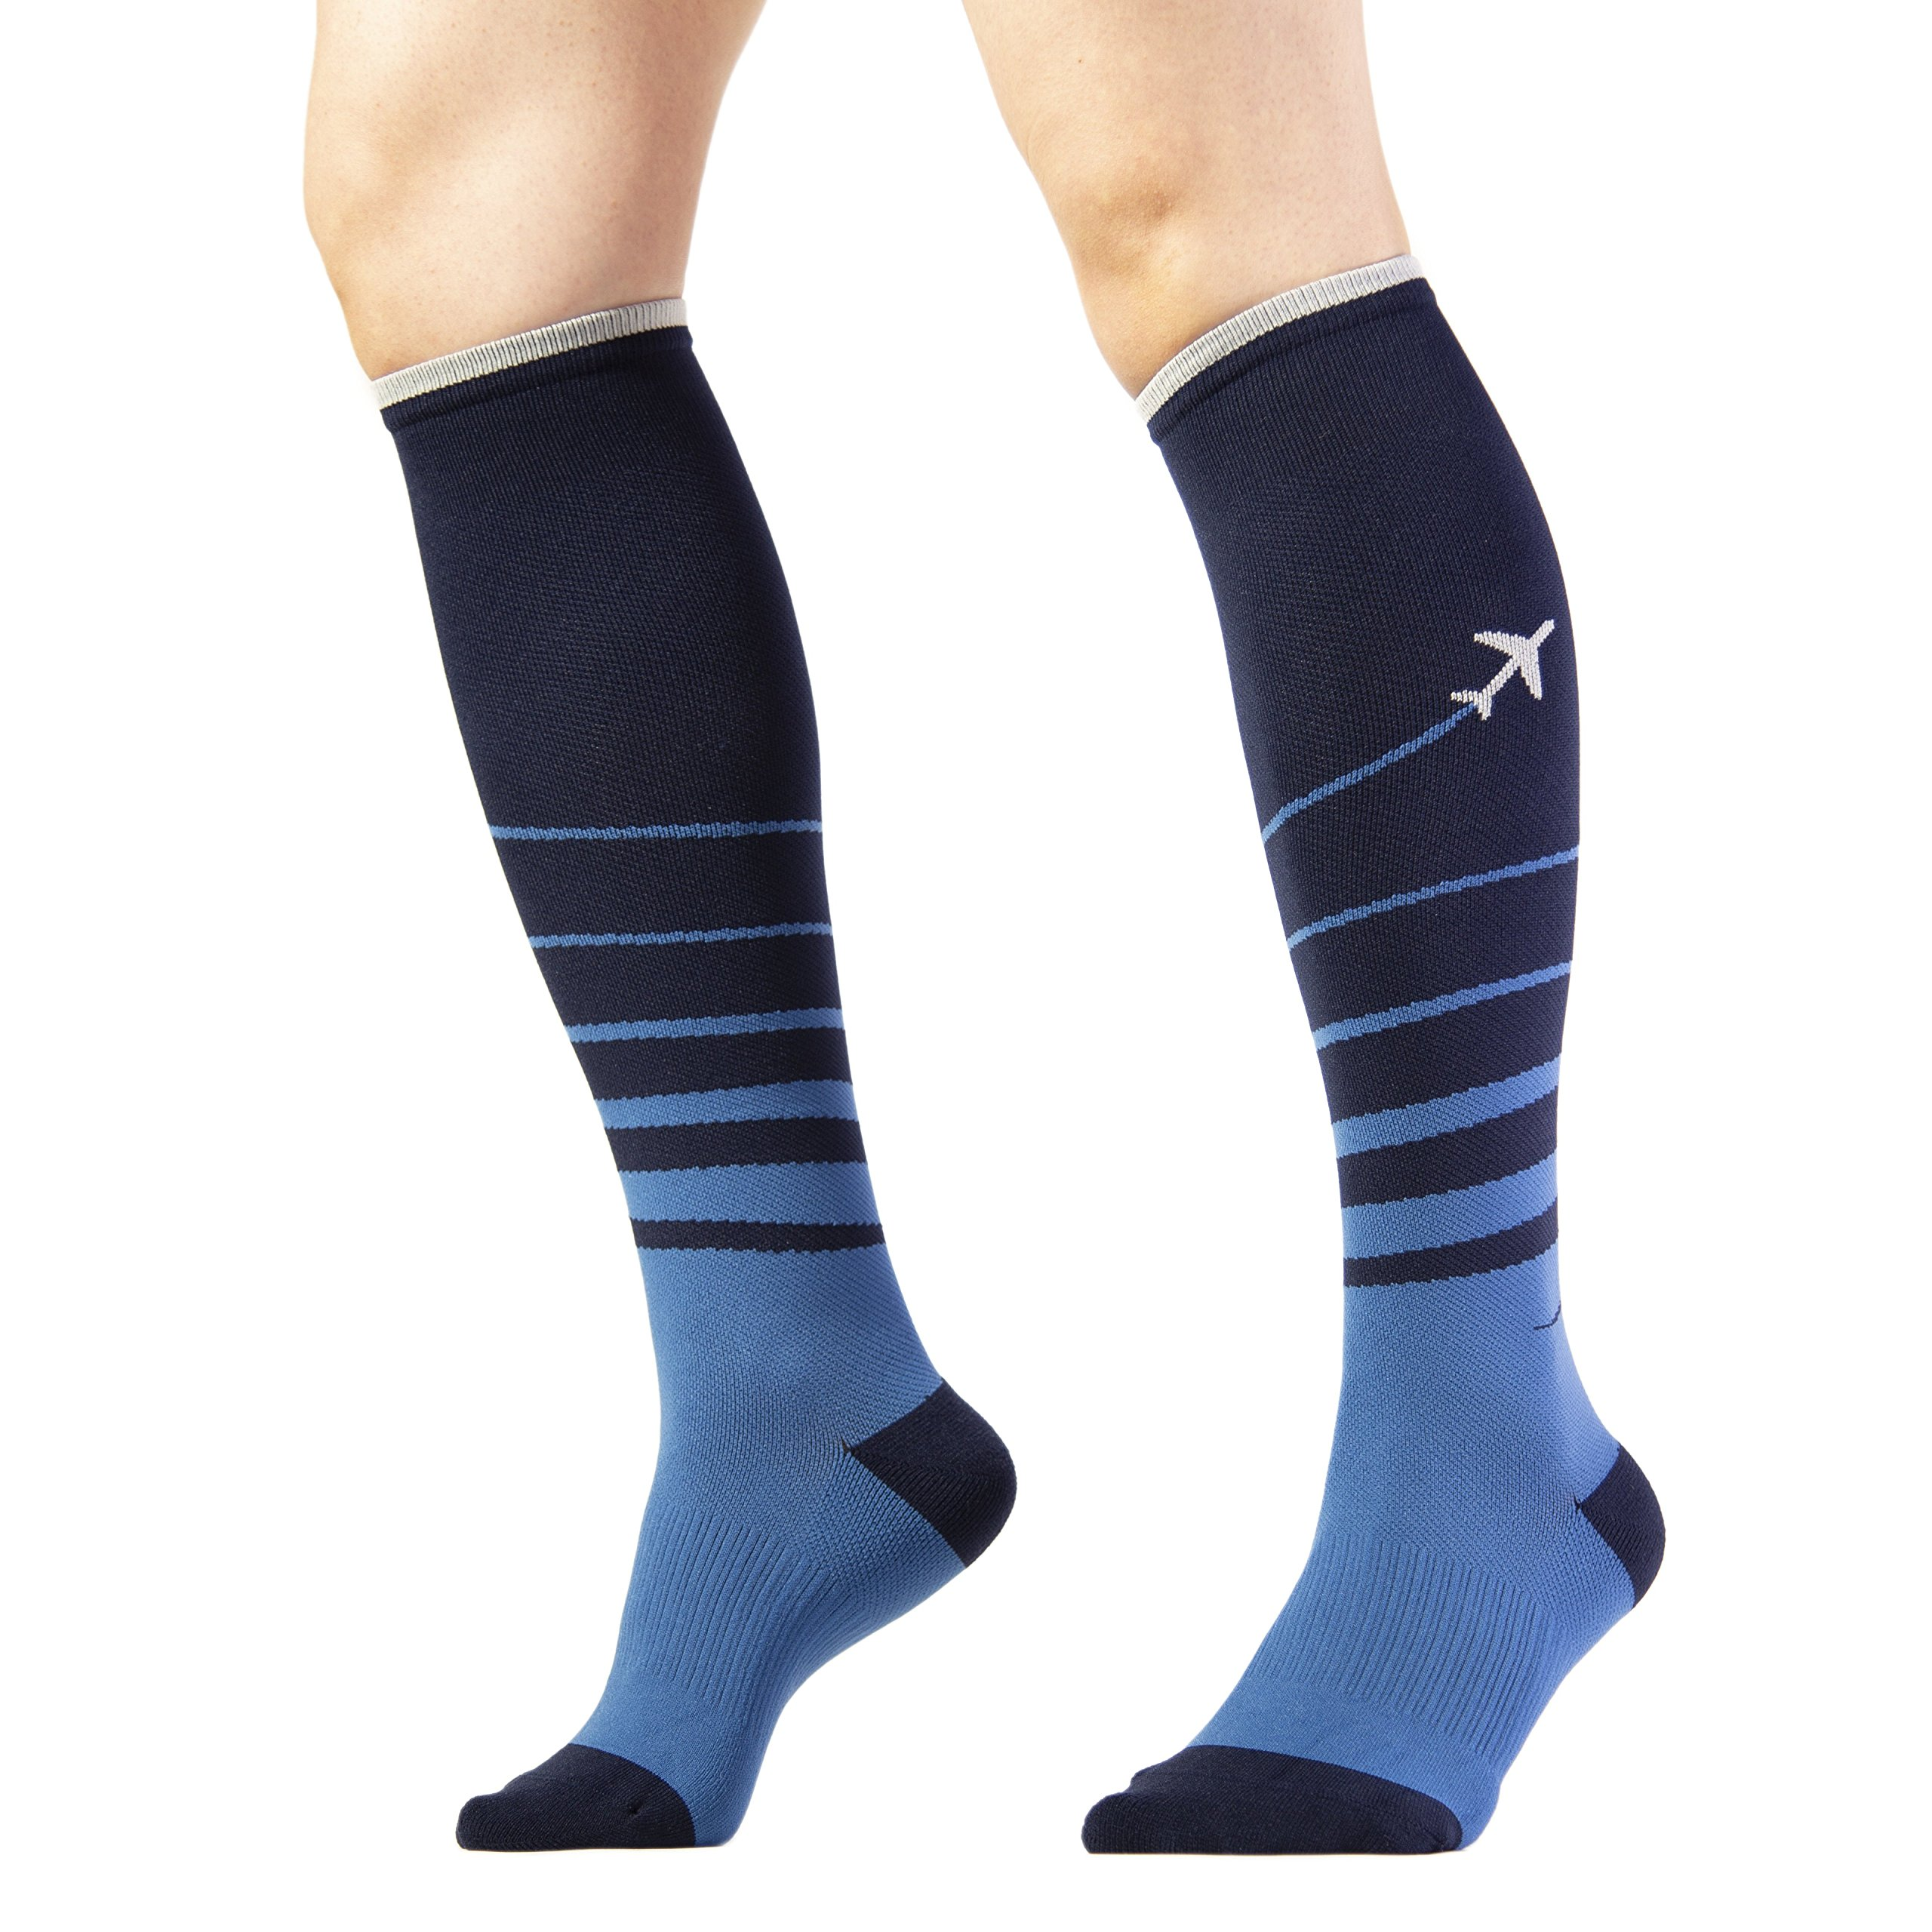 Trtl Compression Socks (Small, Sydney) - Gentle Graduated Compression (15-21mmHg), Comfort, and Quality Knitting, Hugs The Natural Curves of Your Legs and Feet